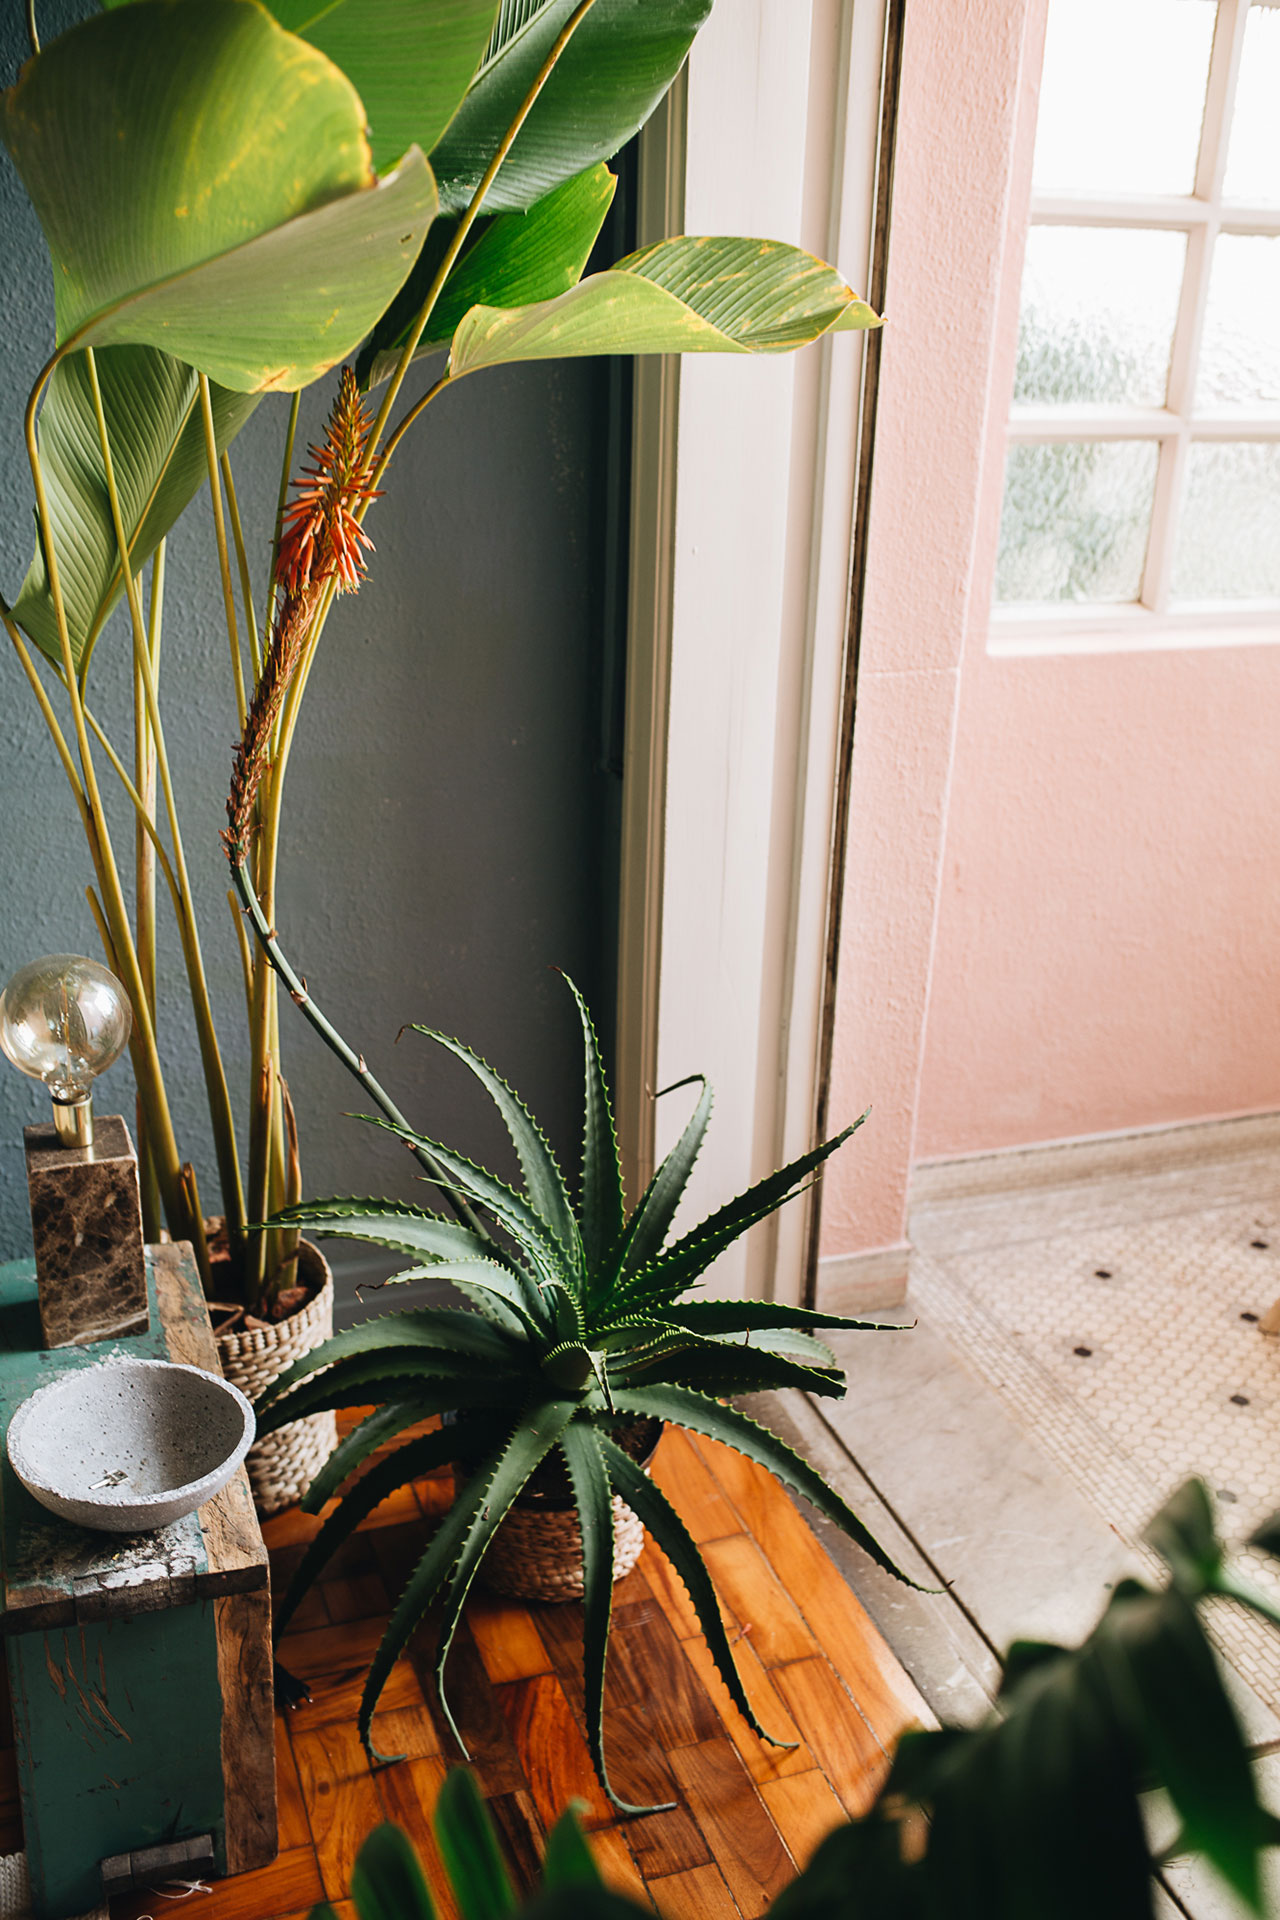 PLANT TRIBE LIVING HAPPILY EVER AFTER WITH PLANTSBy Igor Josifovic & Judith de Graaff Photo: The home of Derek Fernandes in São Paulo, Brazil.Photography by Jules Villbrandt.